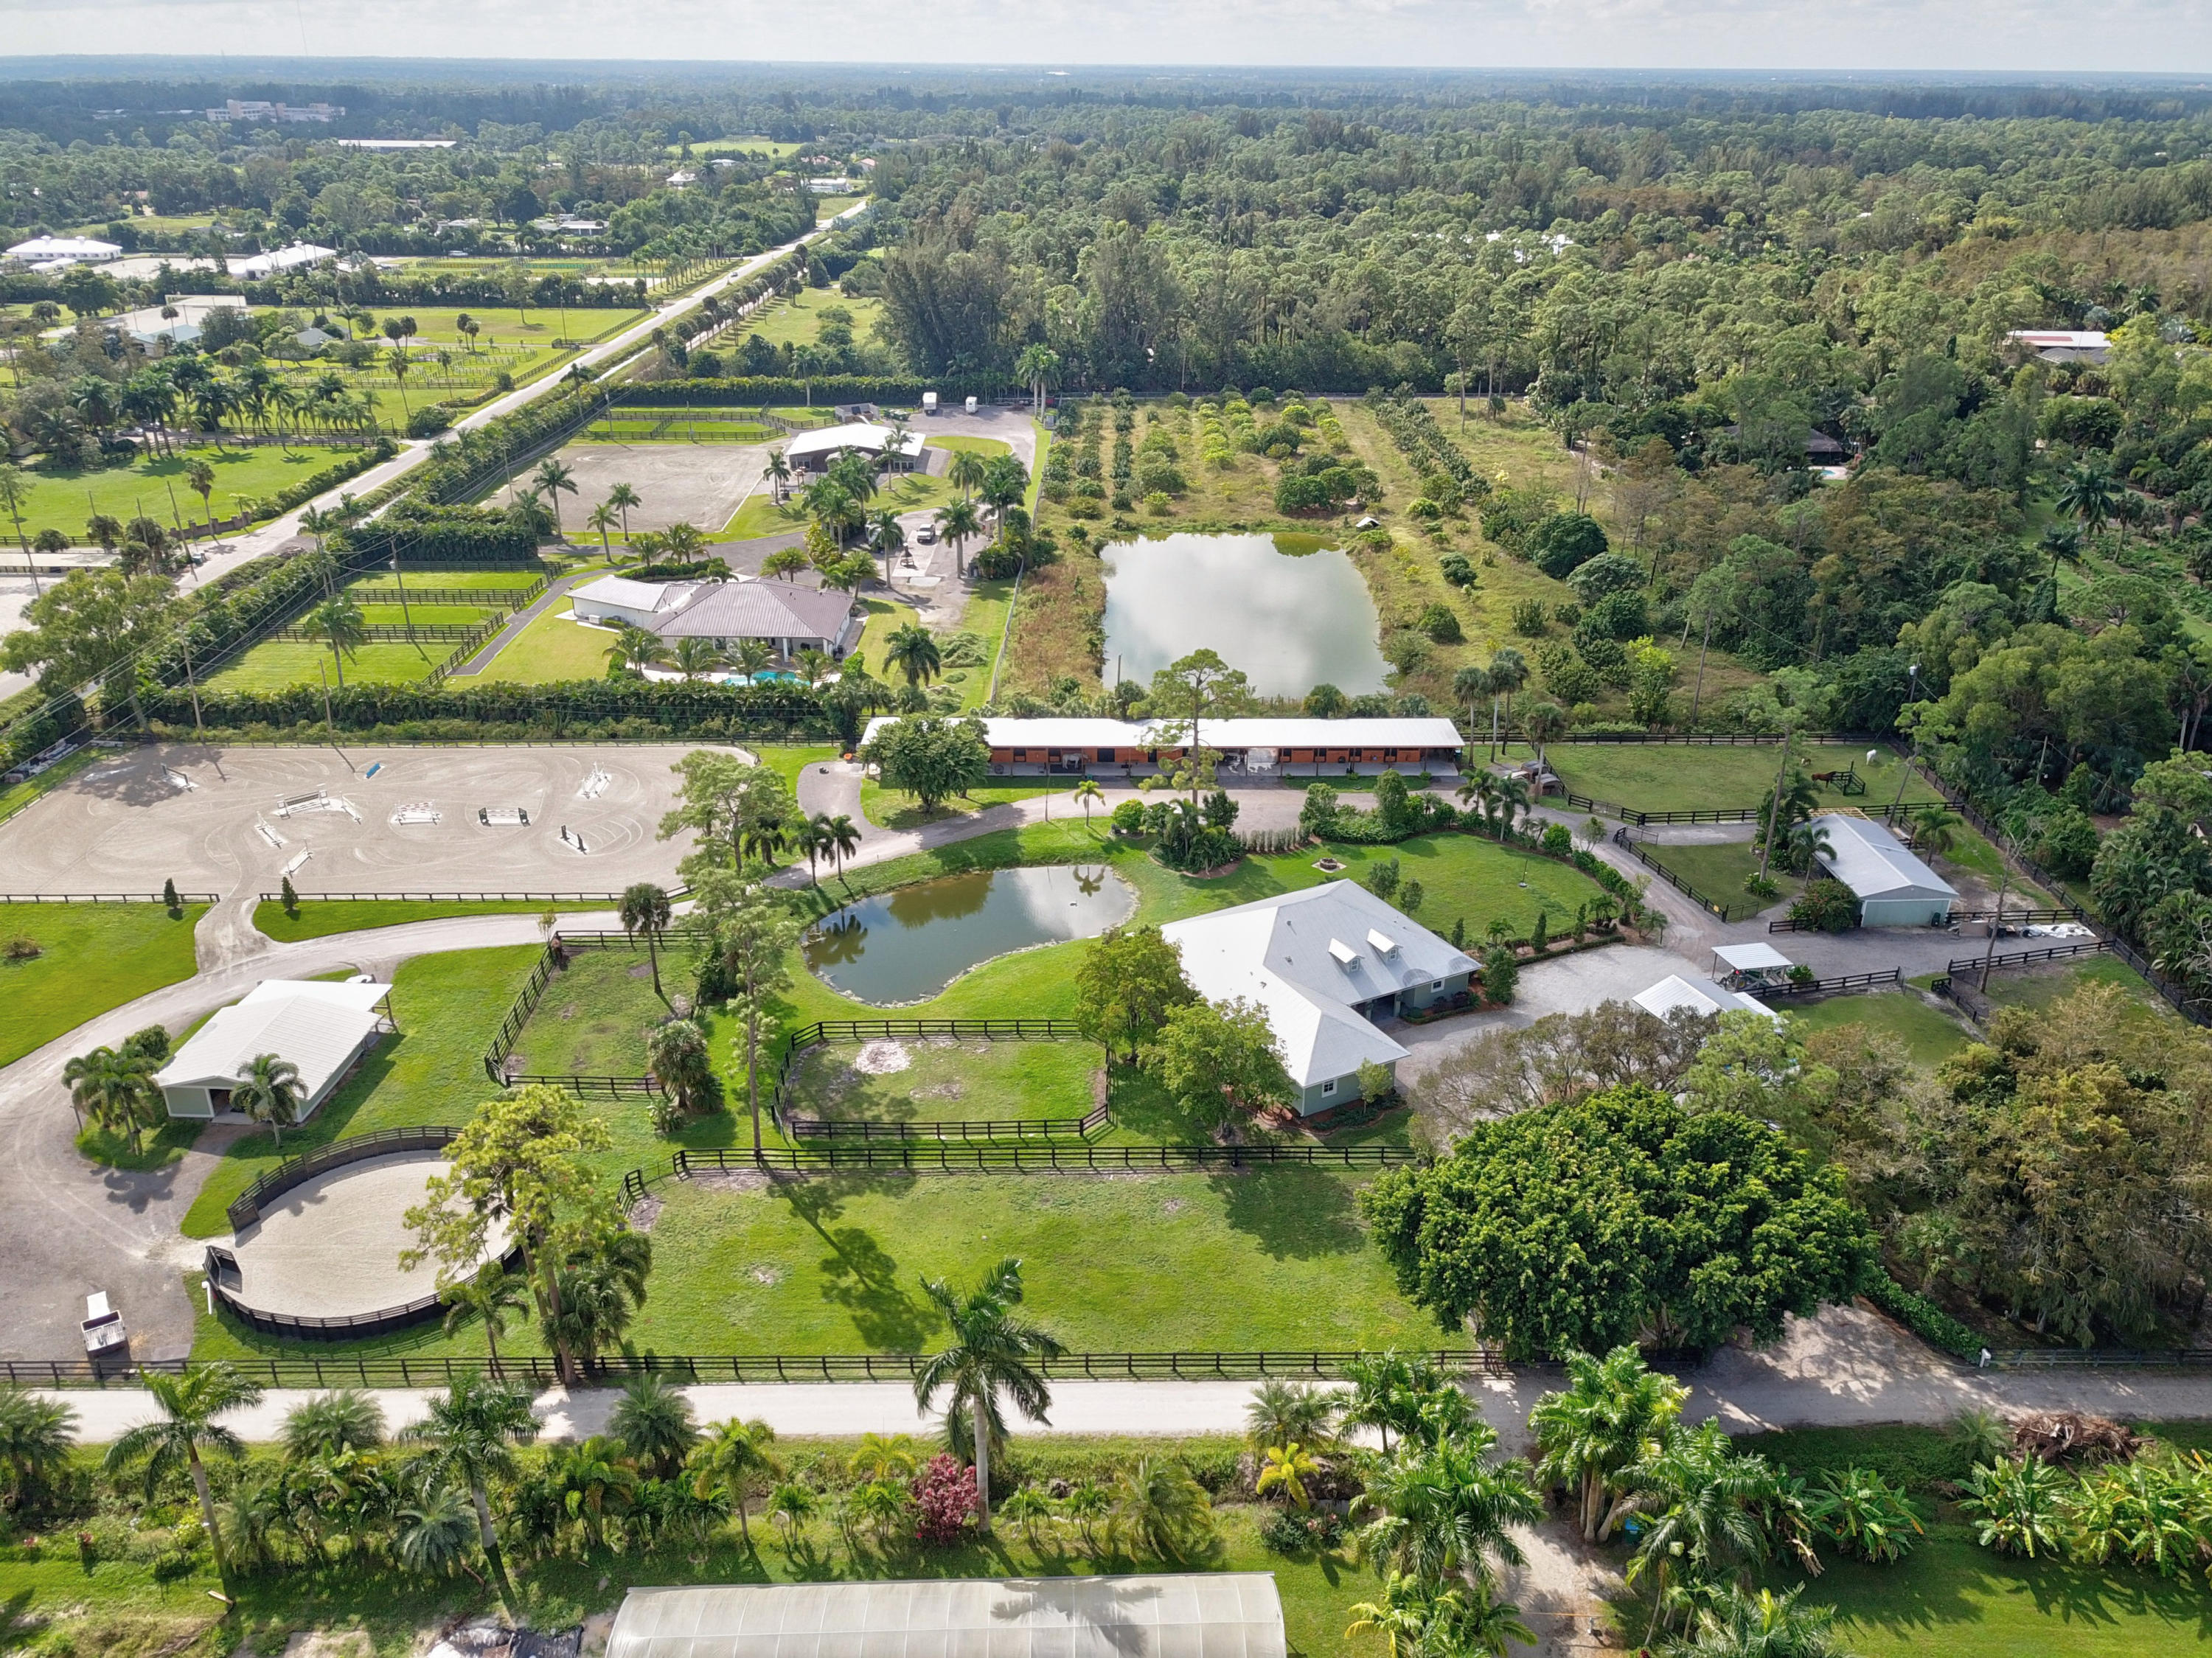 1363 14th Place - Loxahatchee Groves, Florida